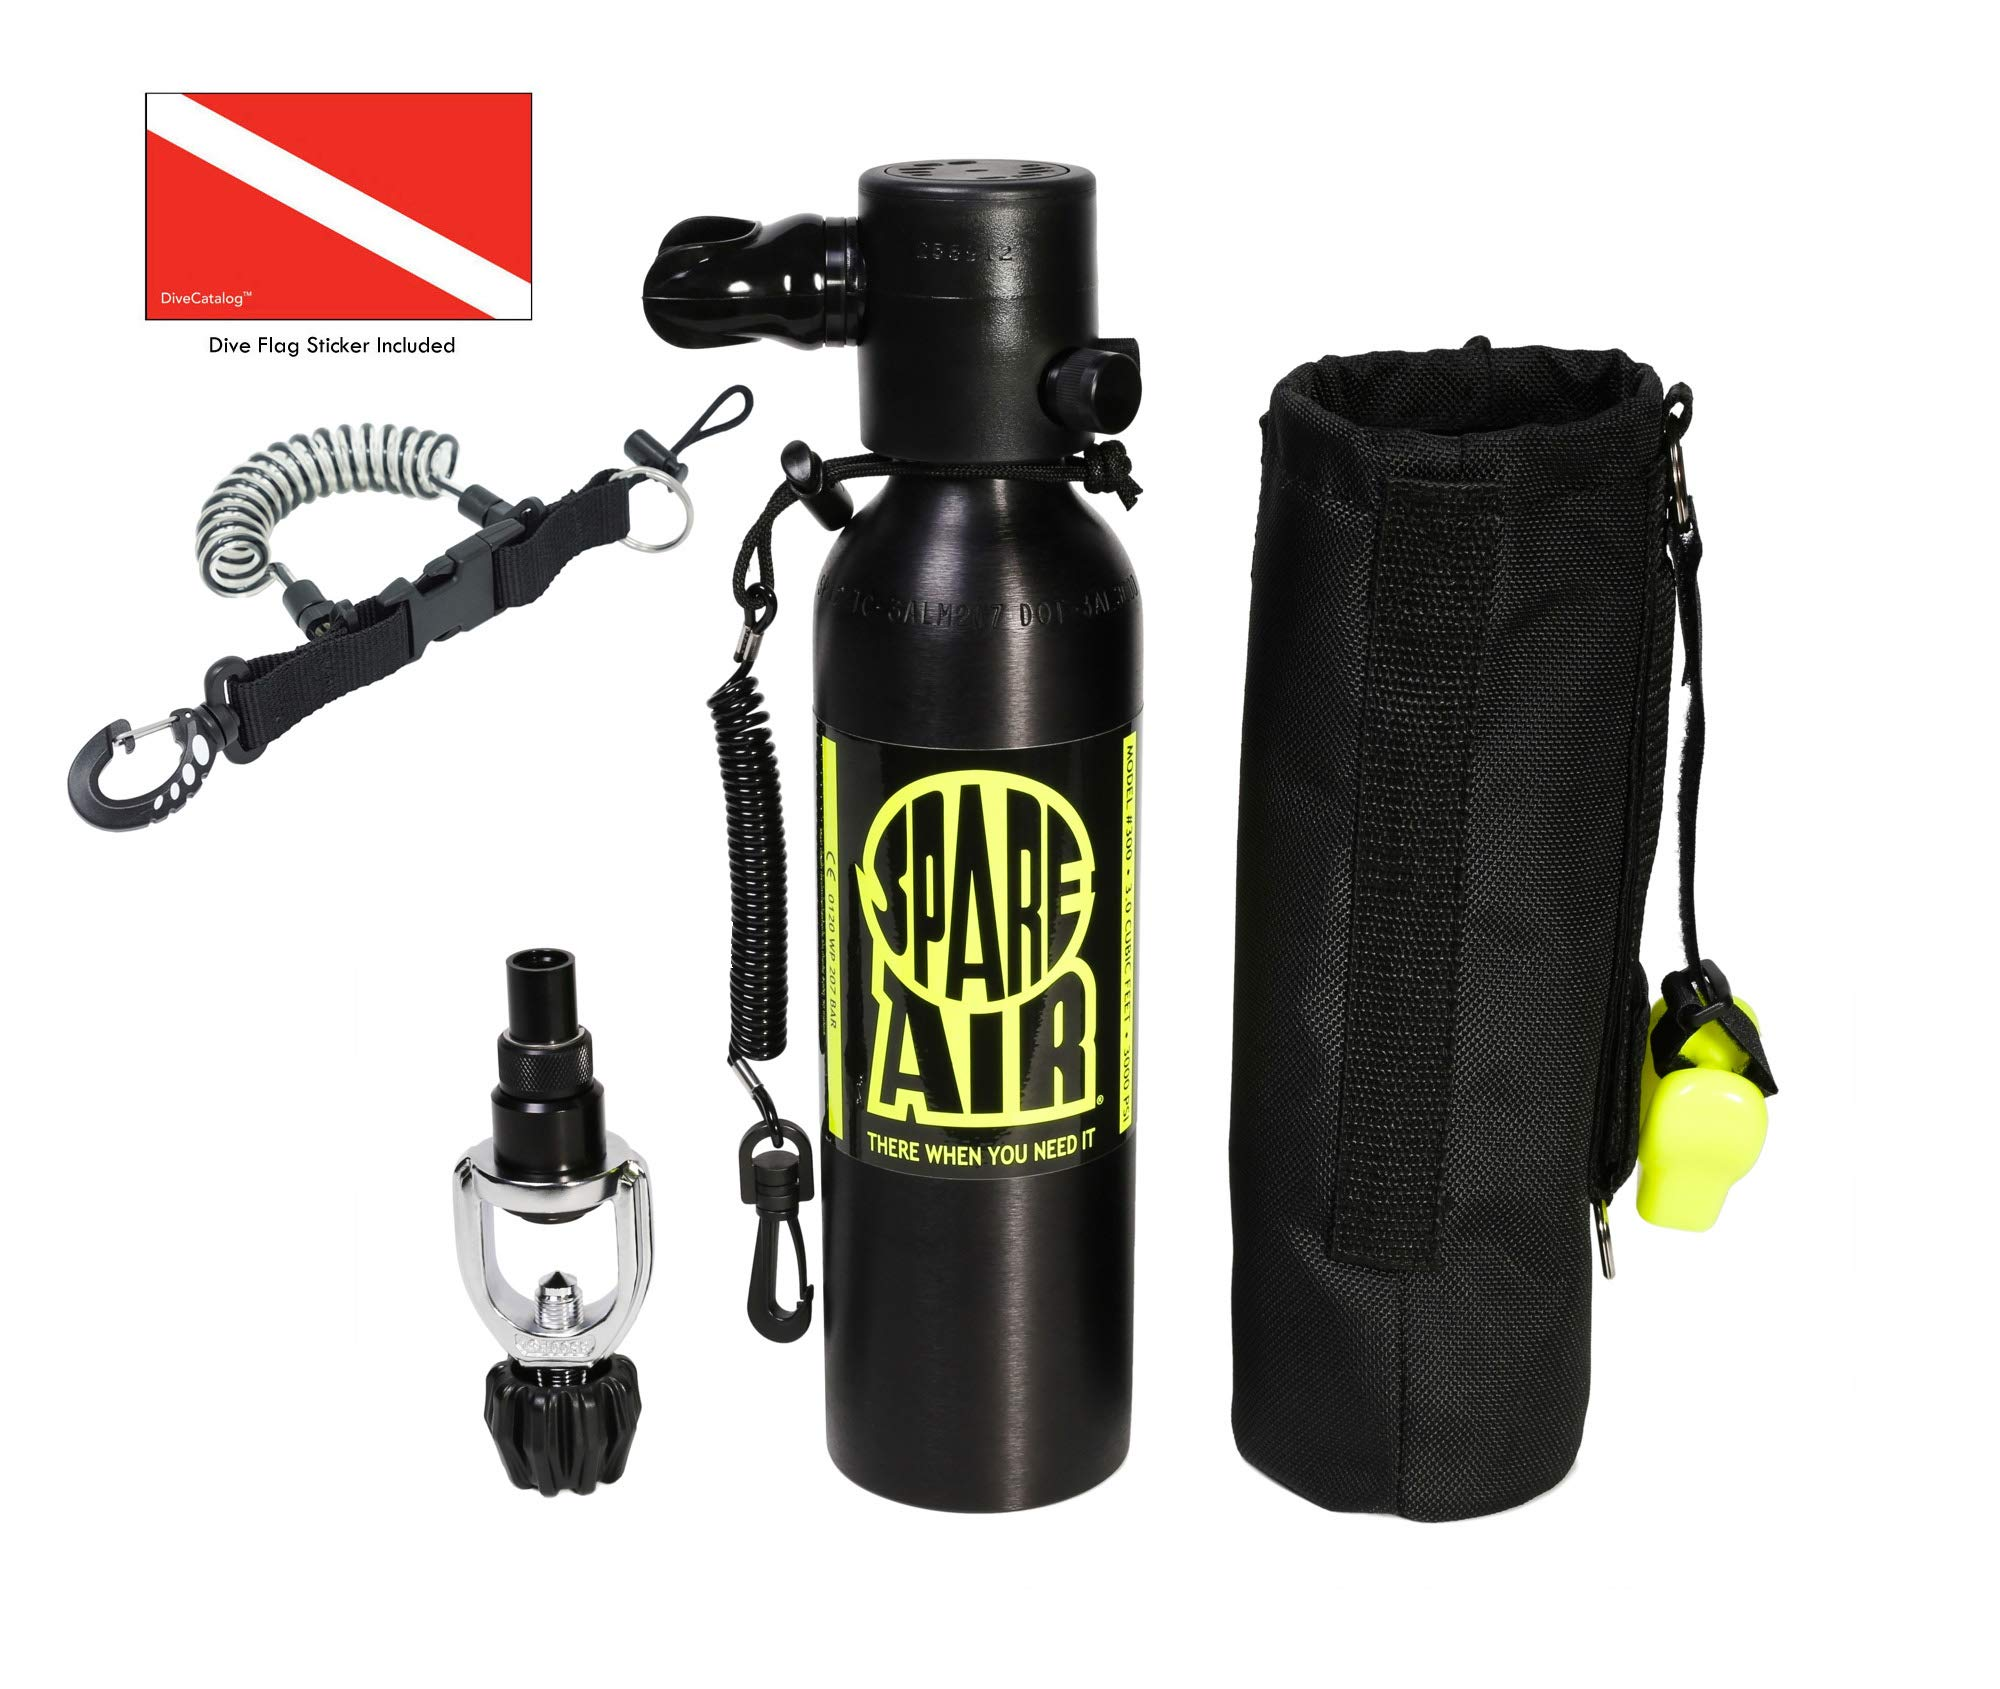 Submersible Systems Spare Air, 6.0 cu. ft. Package 600PK with DiveCatalog Coil Lanyard and Dive Flag Sticker